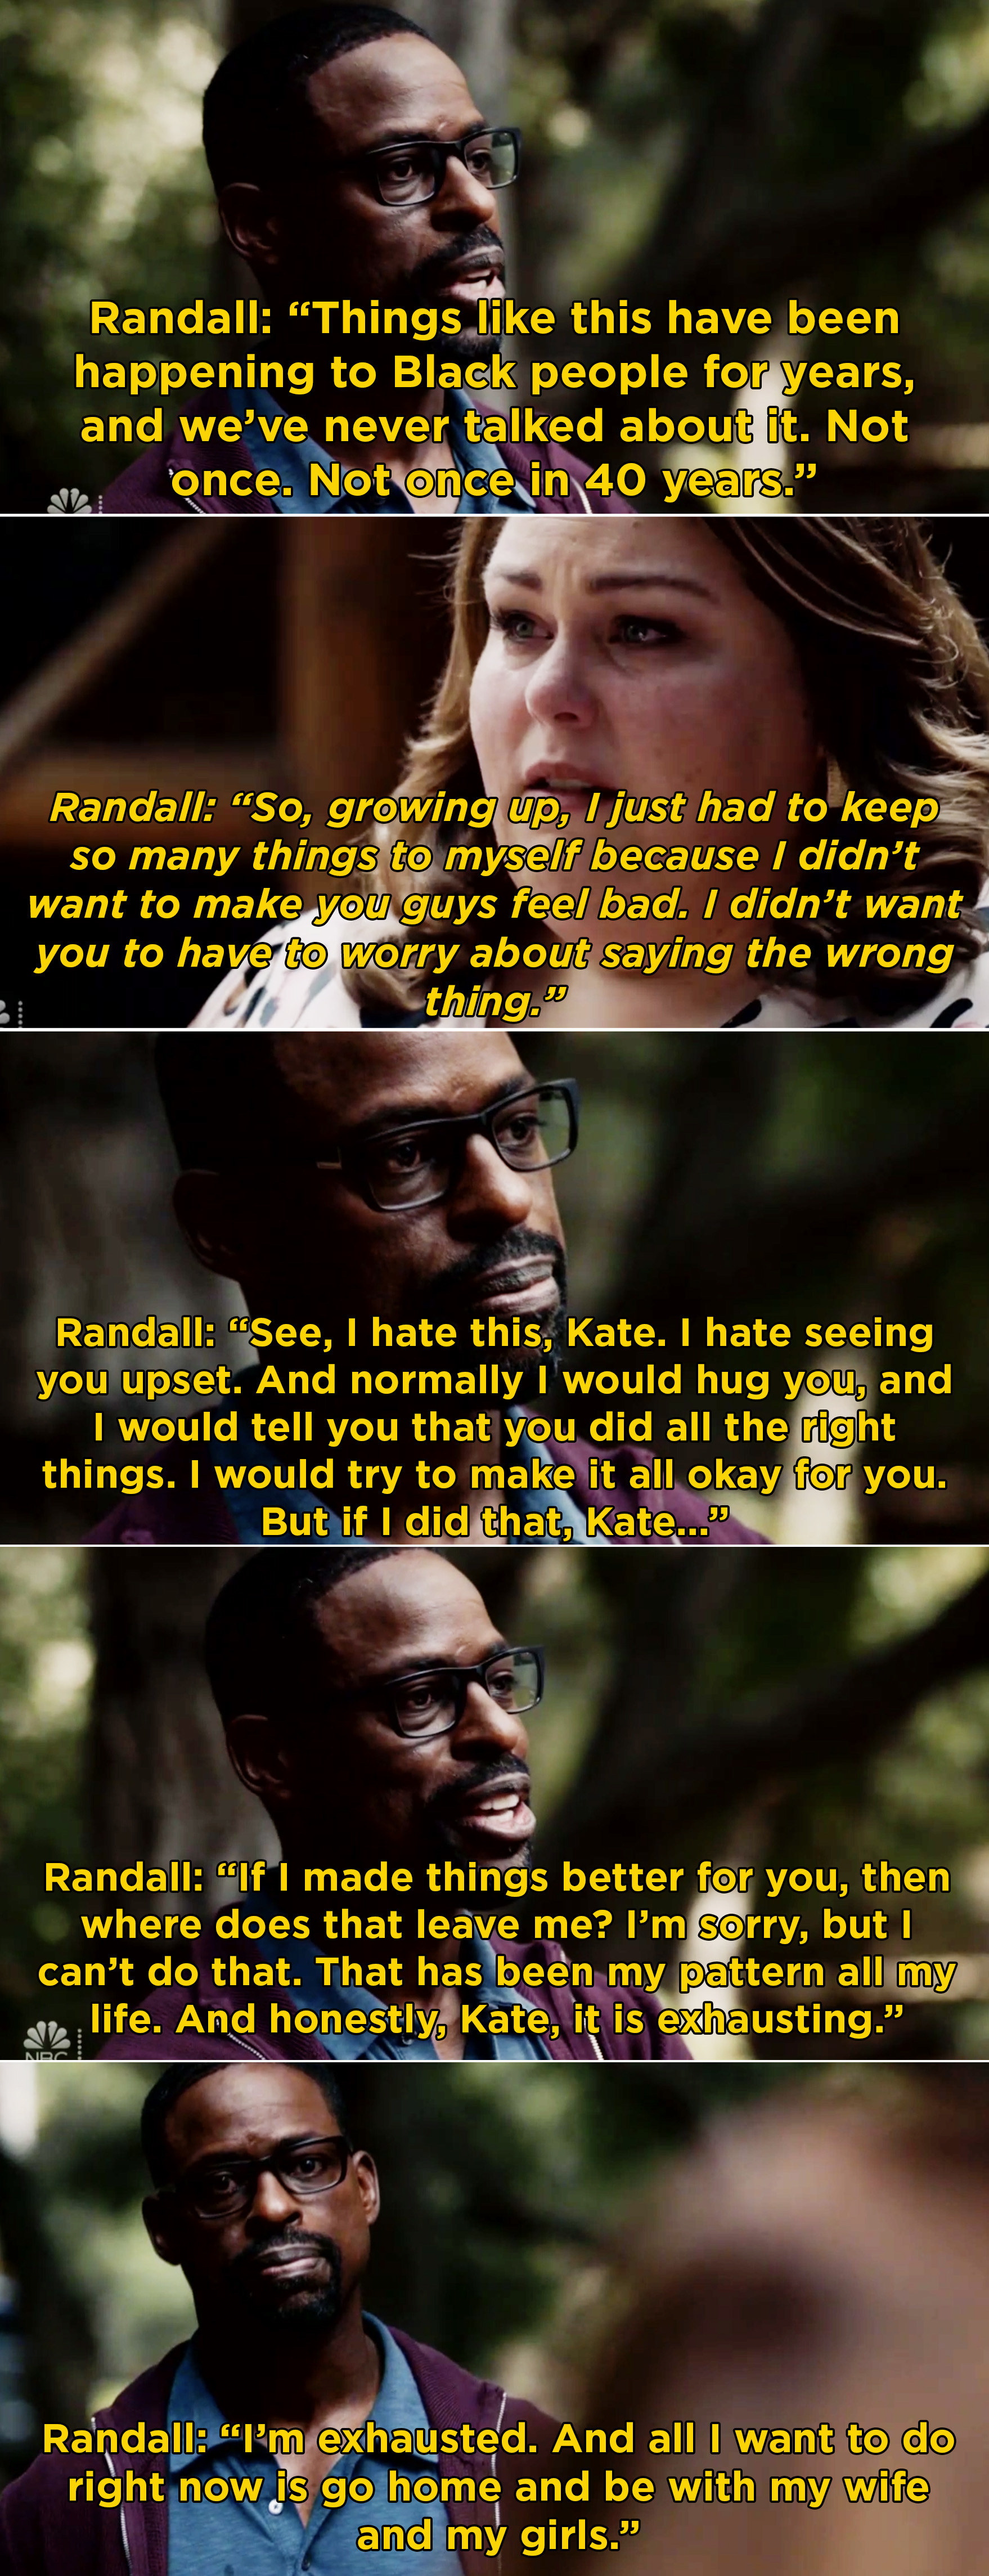 Randall explaining to Kate that he is tired of trying to make her feel better and not talk about his experiences as a Black man when they are tough to talk about